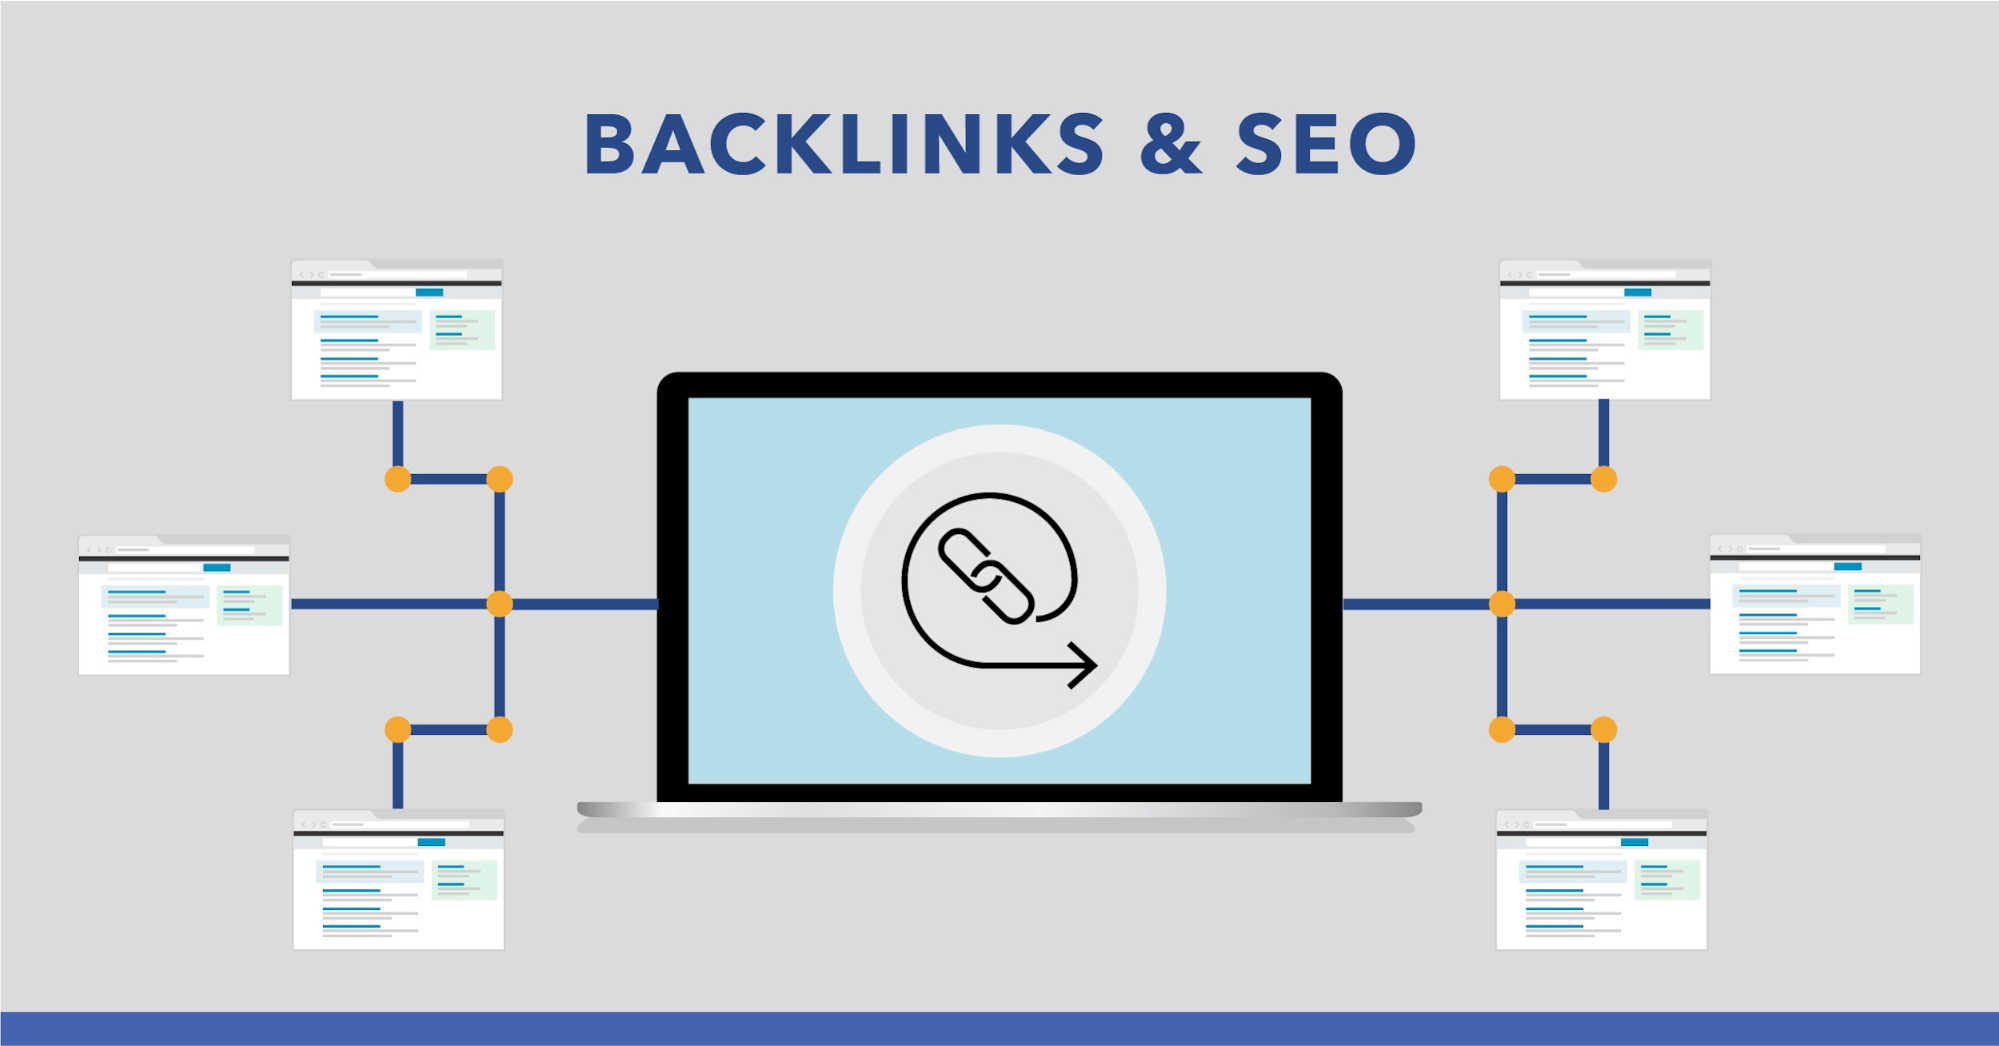 This is why backlinks are important for SEO